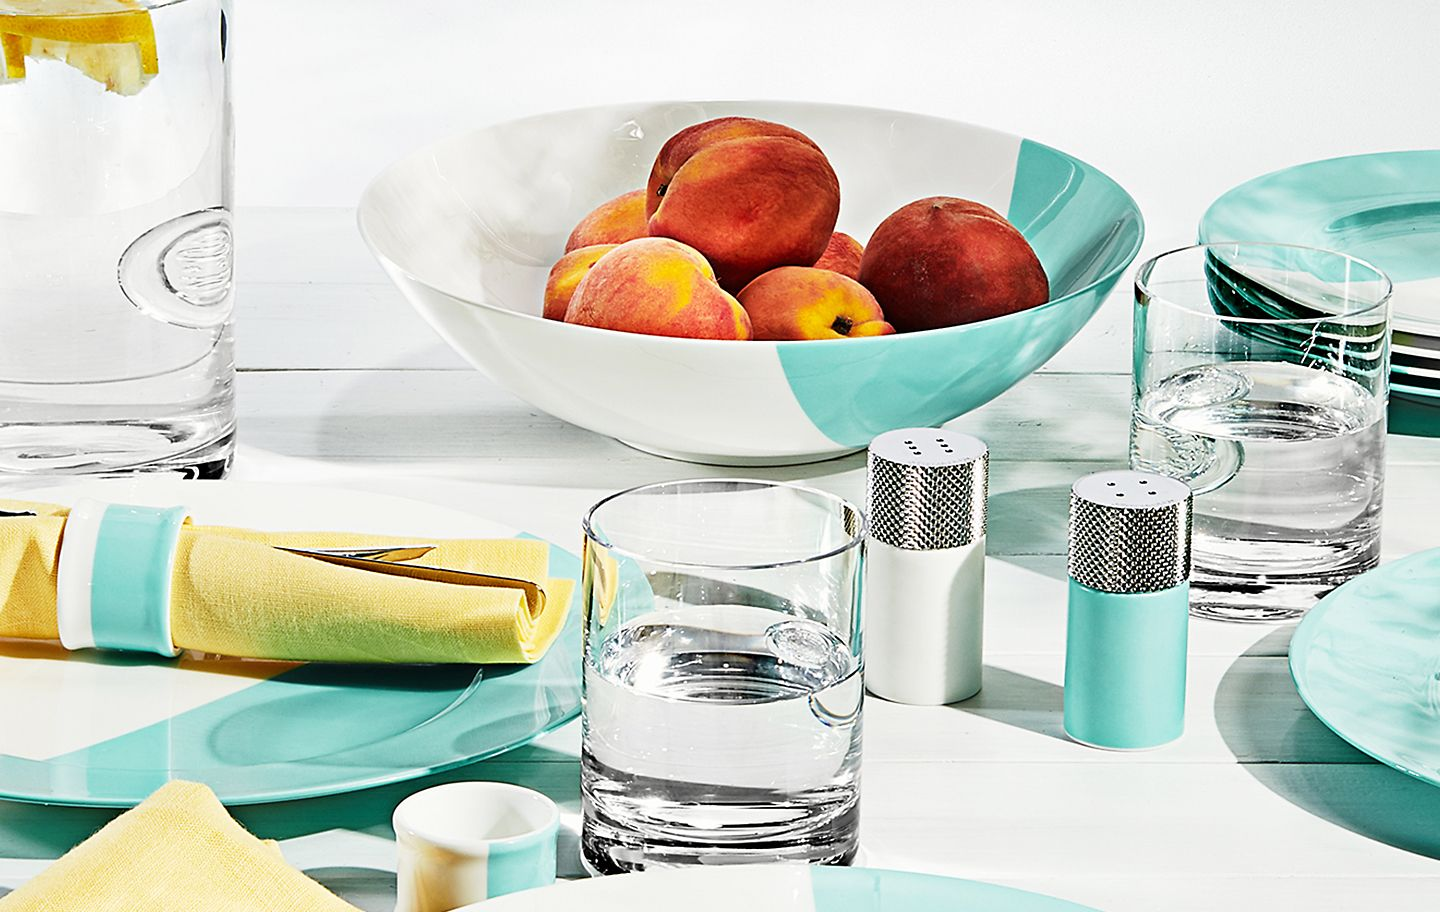 Tiffany & Co. Home & Accessories